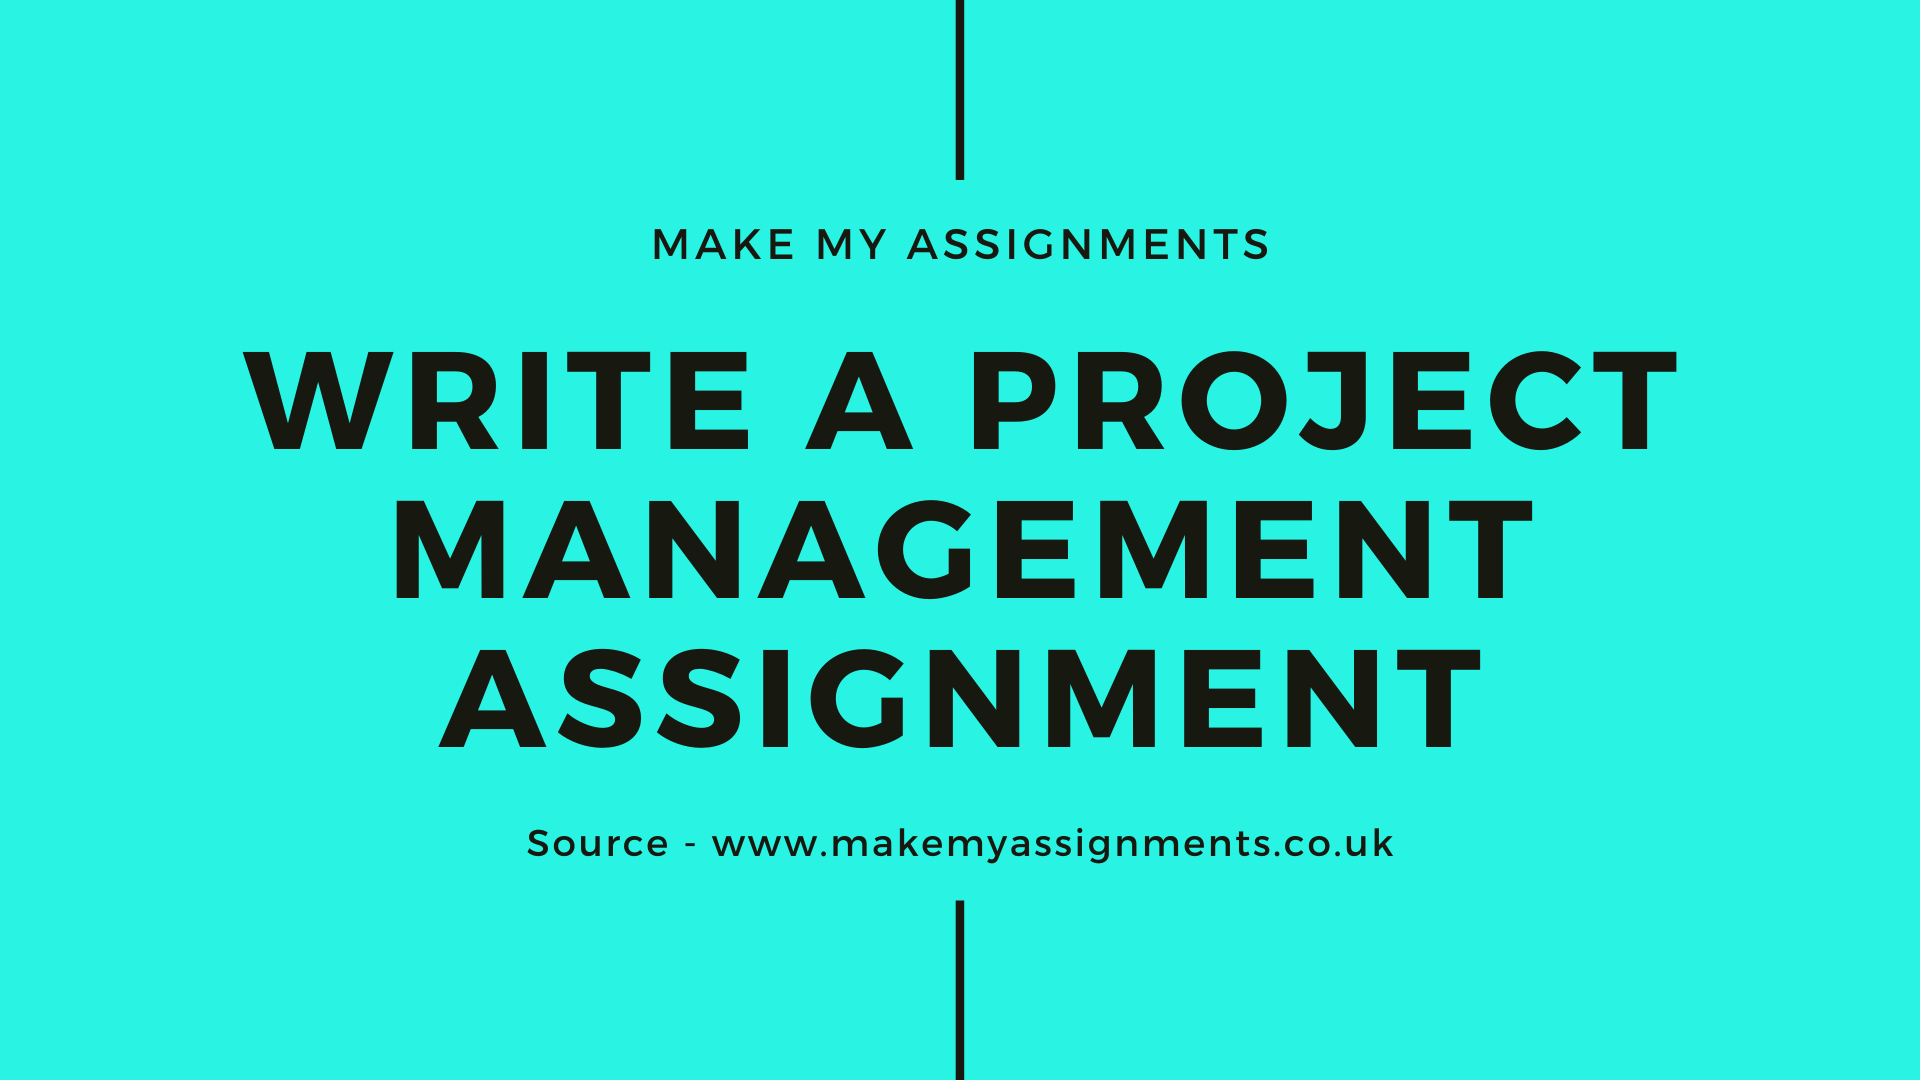 How to write a Project Management Assignment